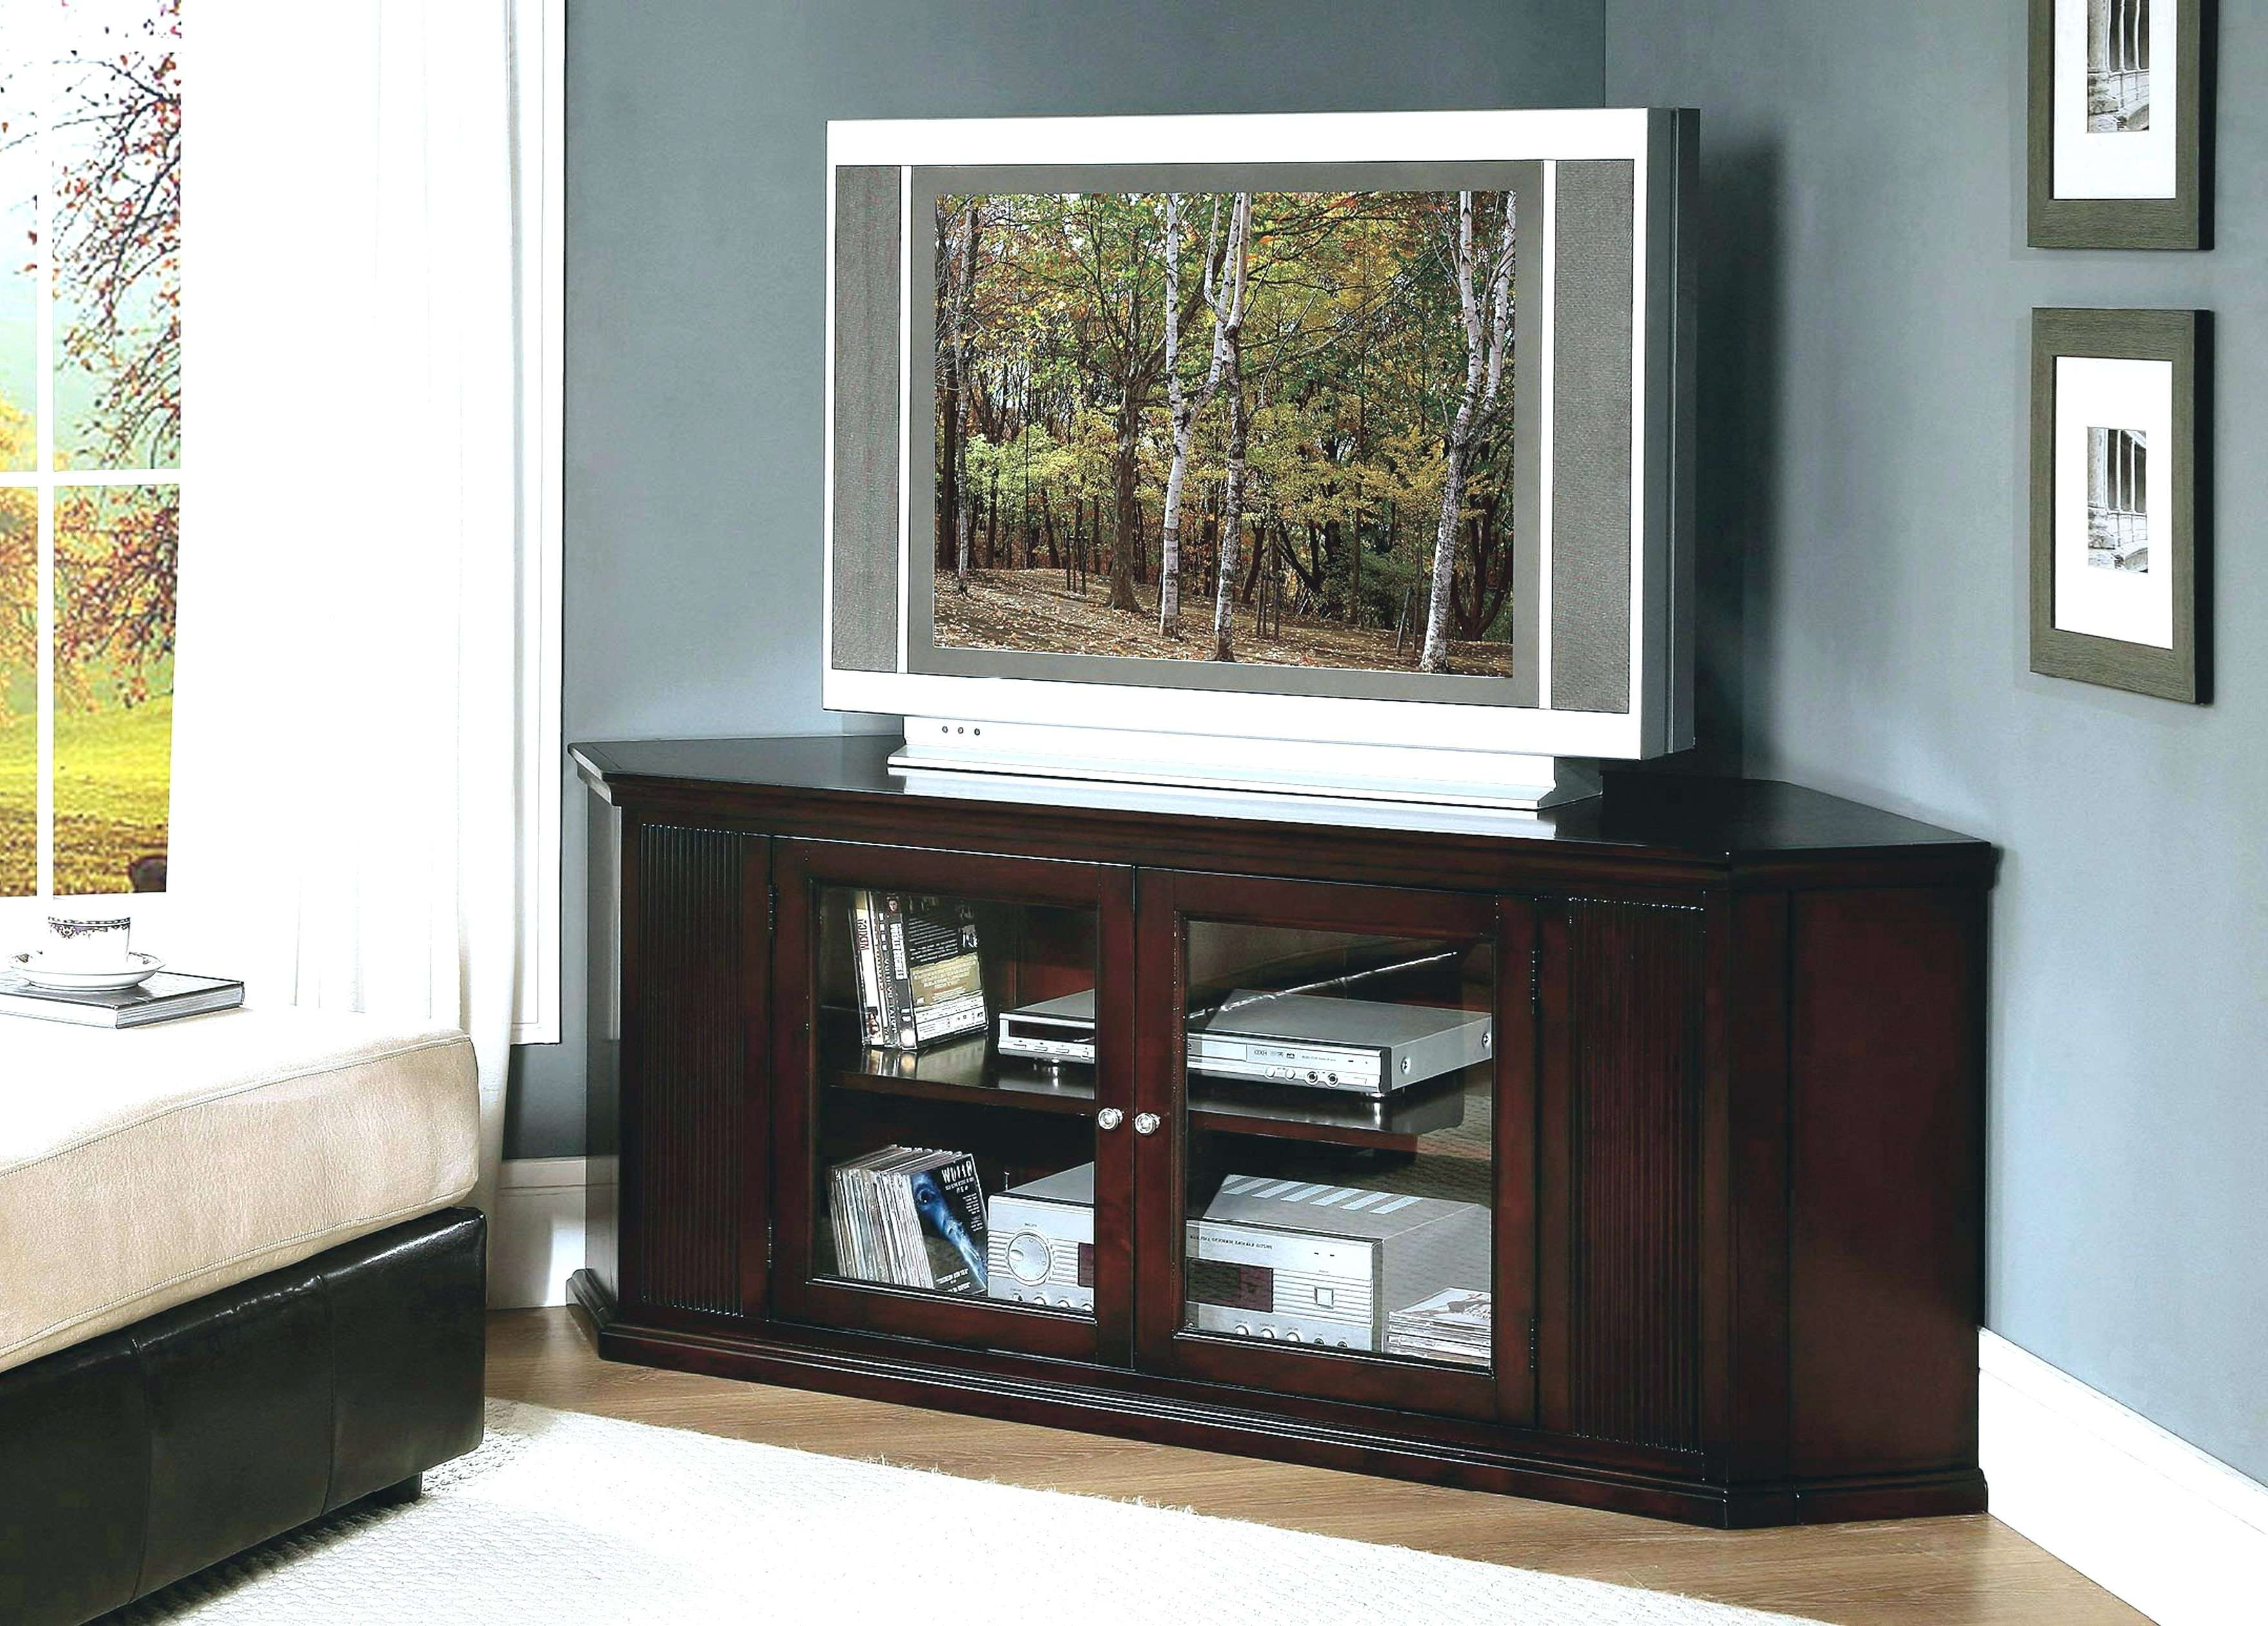 Tv Stand : Mahogany Tv Stand Corner Hover To Zoom Dark Mahogany Tv Pertaining To Mahogany Corner Tv Cabinets (View 20 of 20)